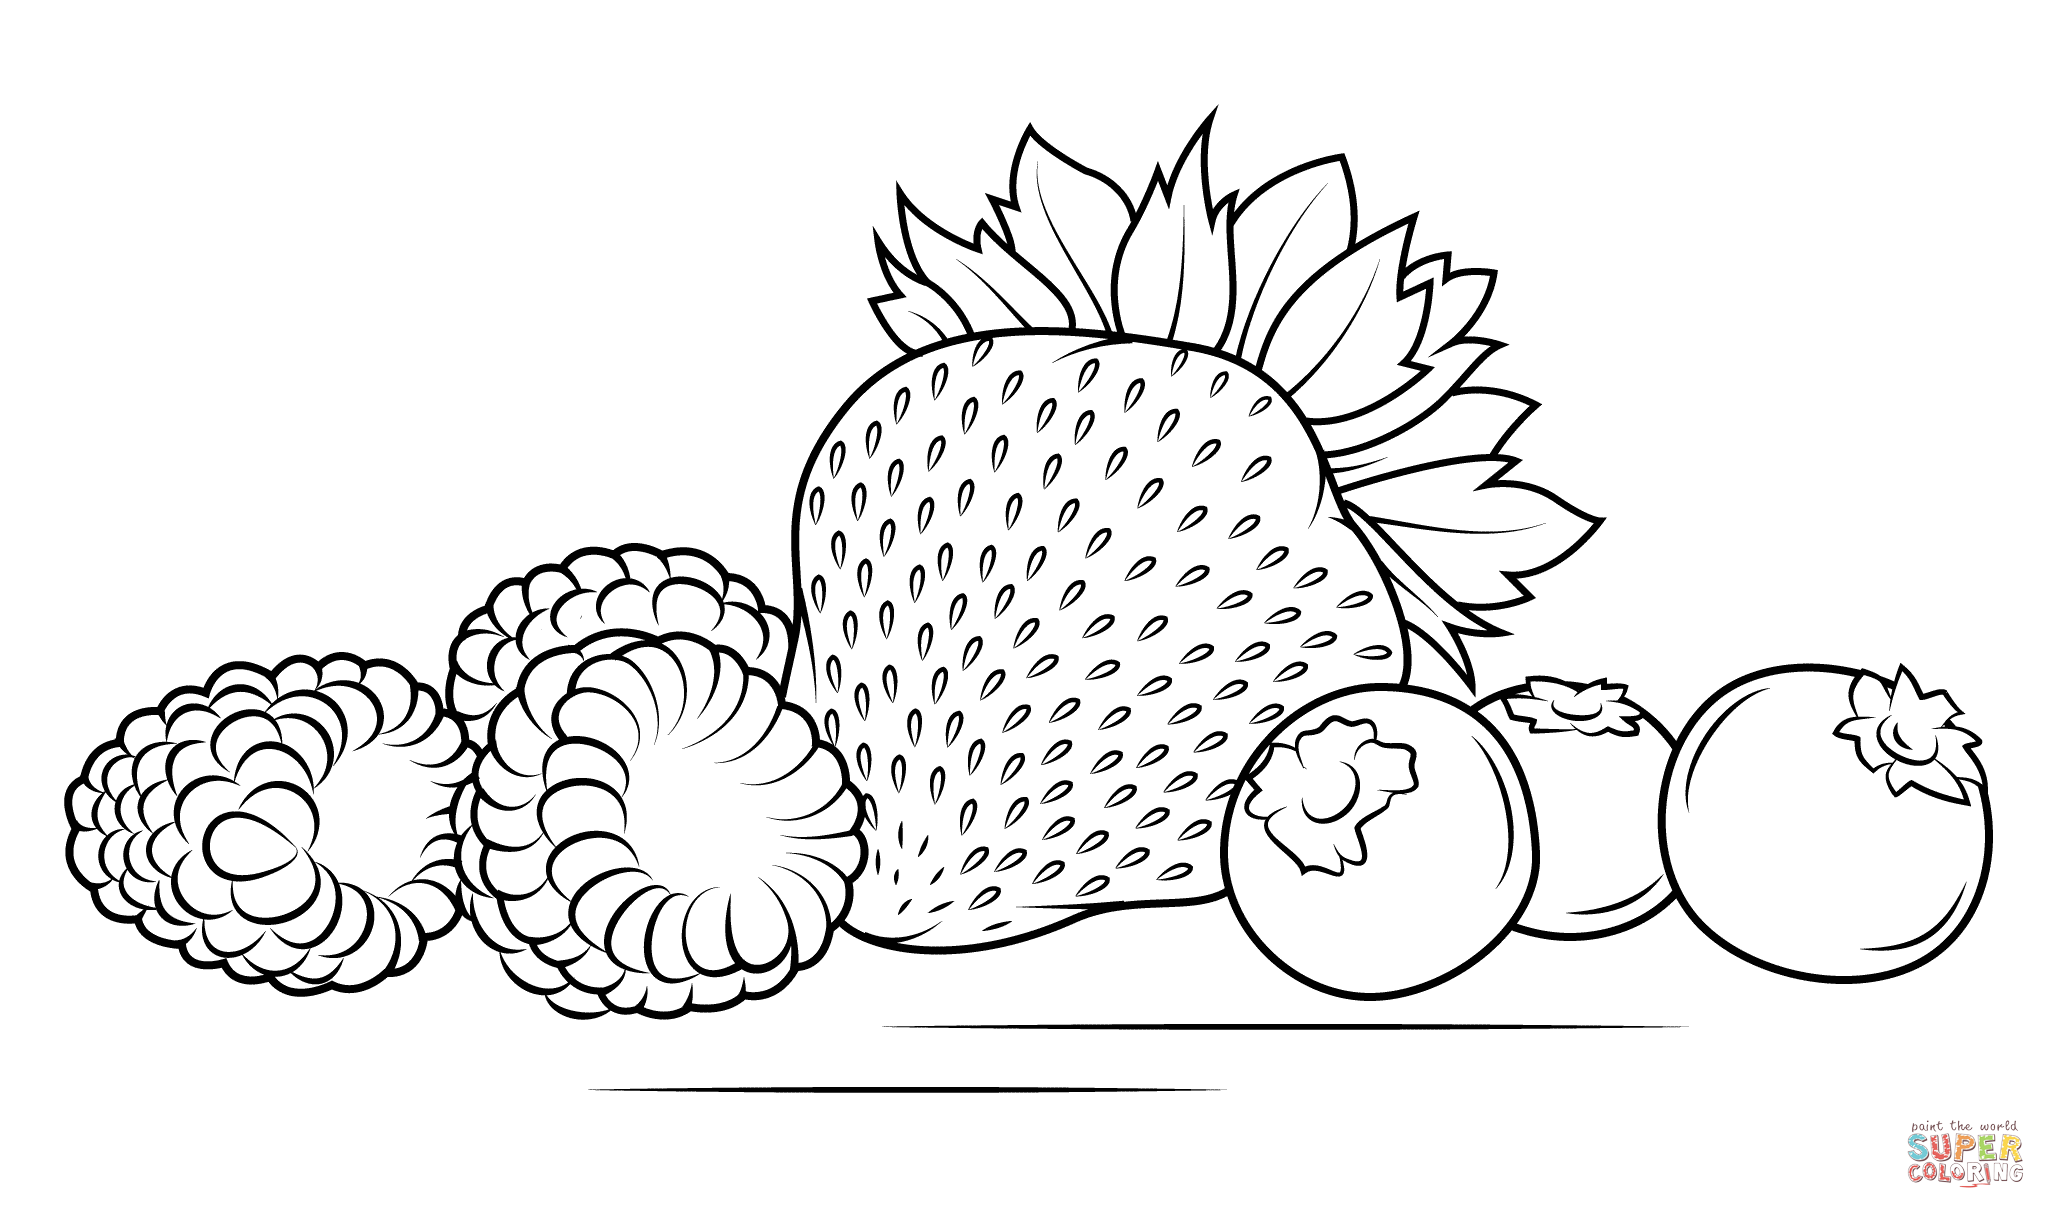 Strawberries Raspberries And Blueberries Coloring Page